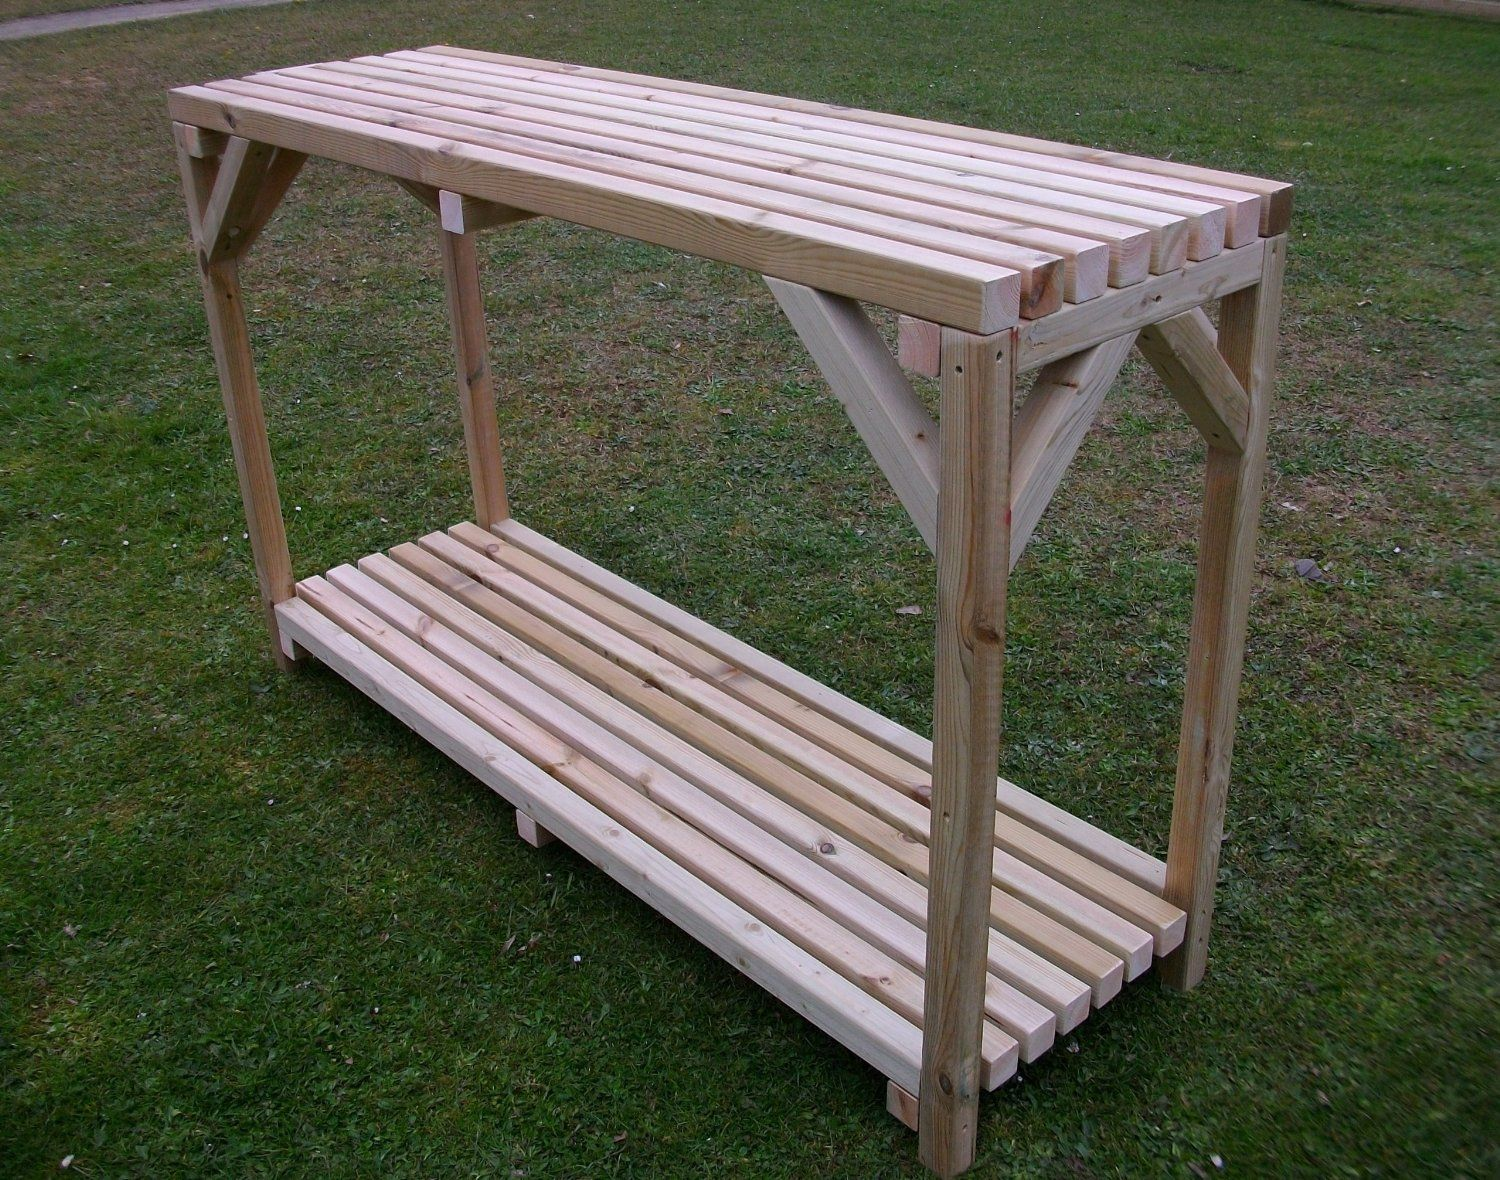 Wooden Greenhouse Shed Potting Bench Staging Table With Shelf 5ft L 145cm X H 89 5cm X W